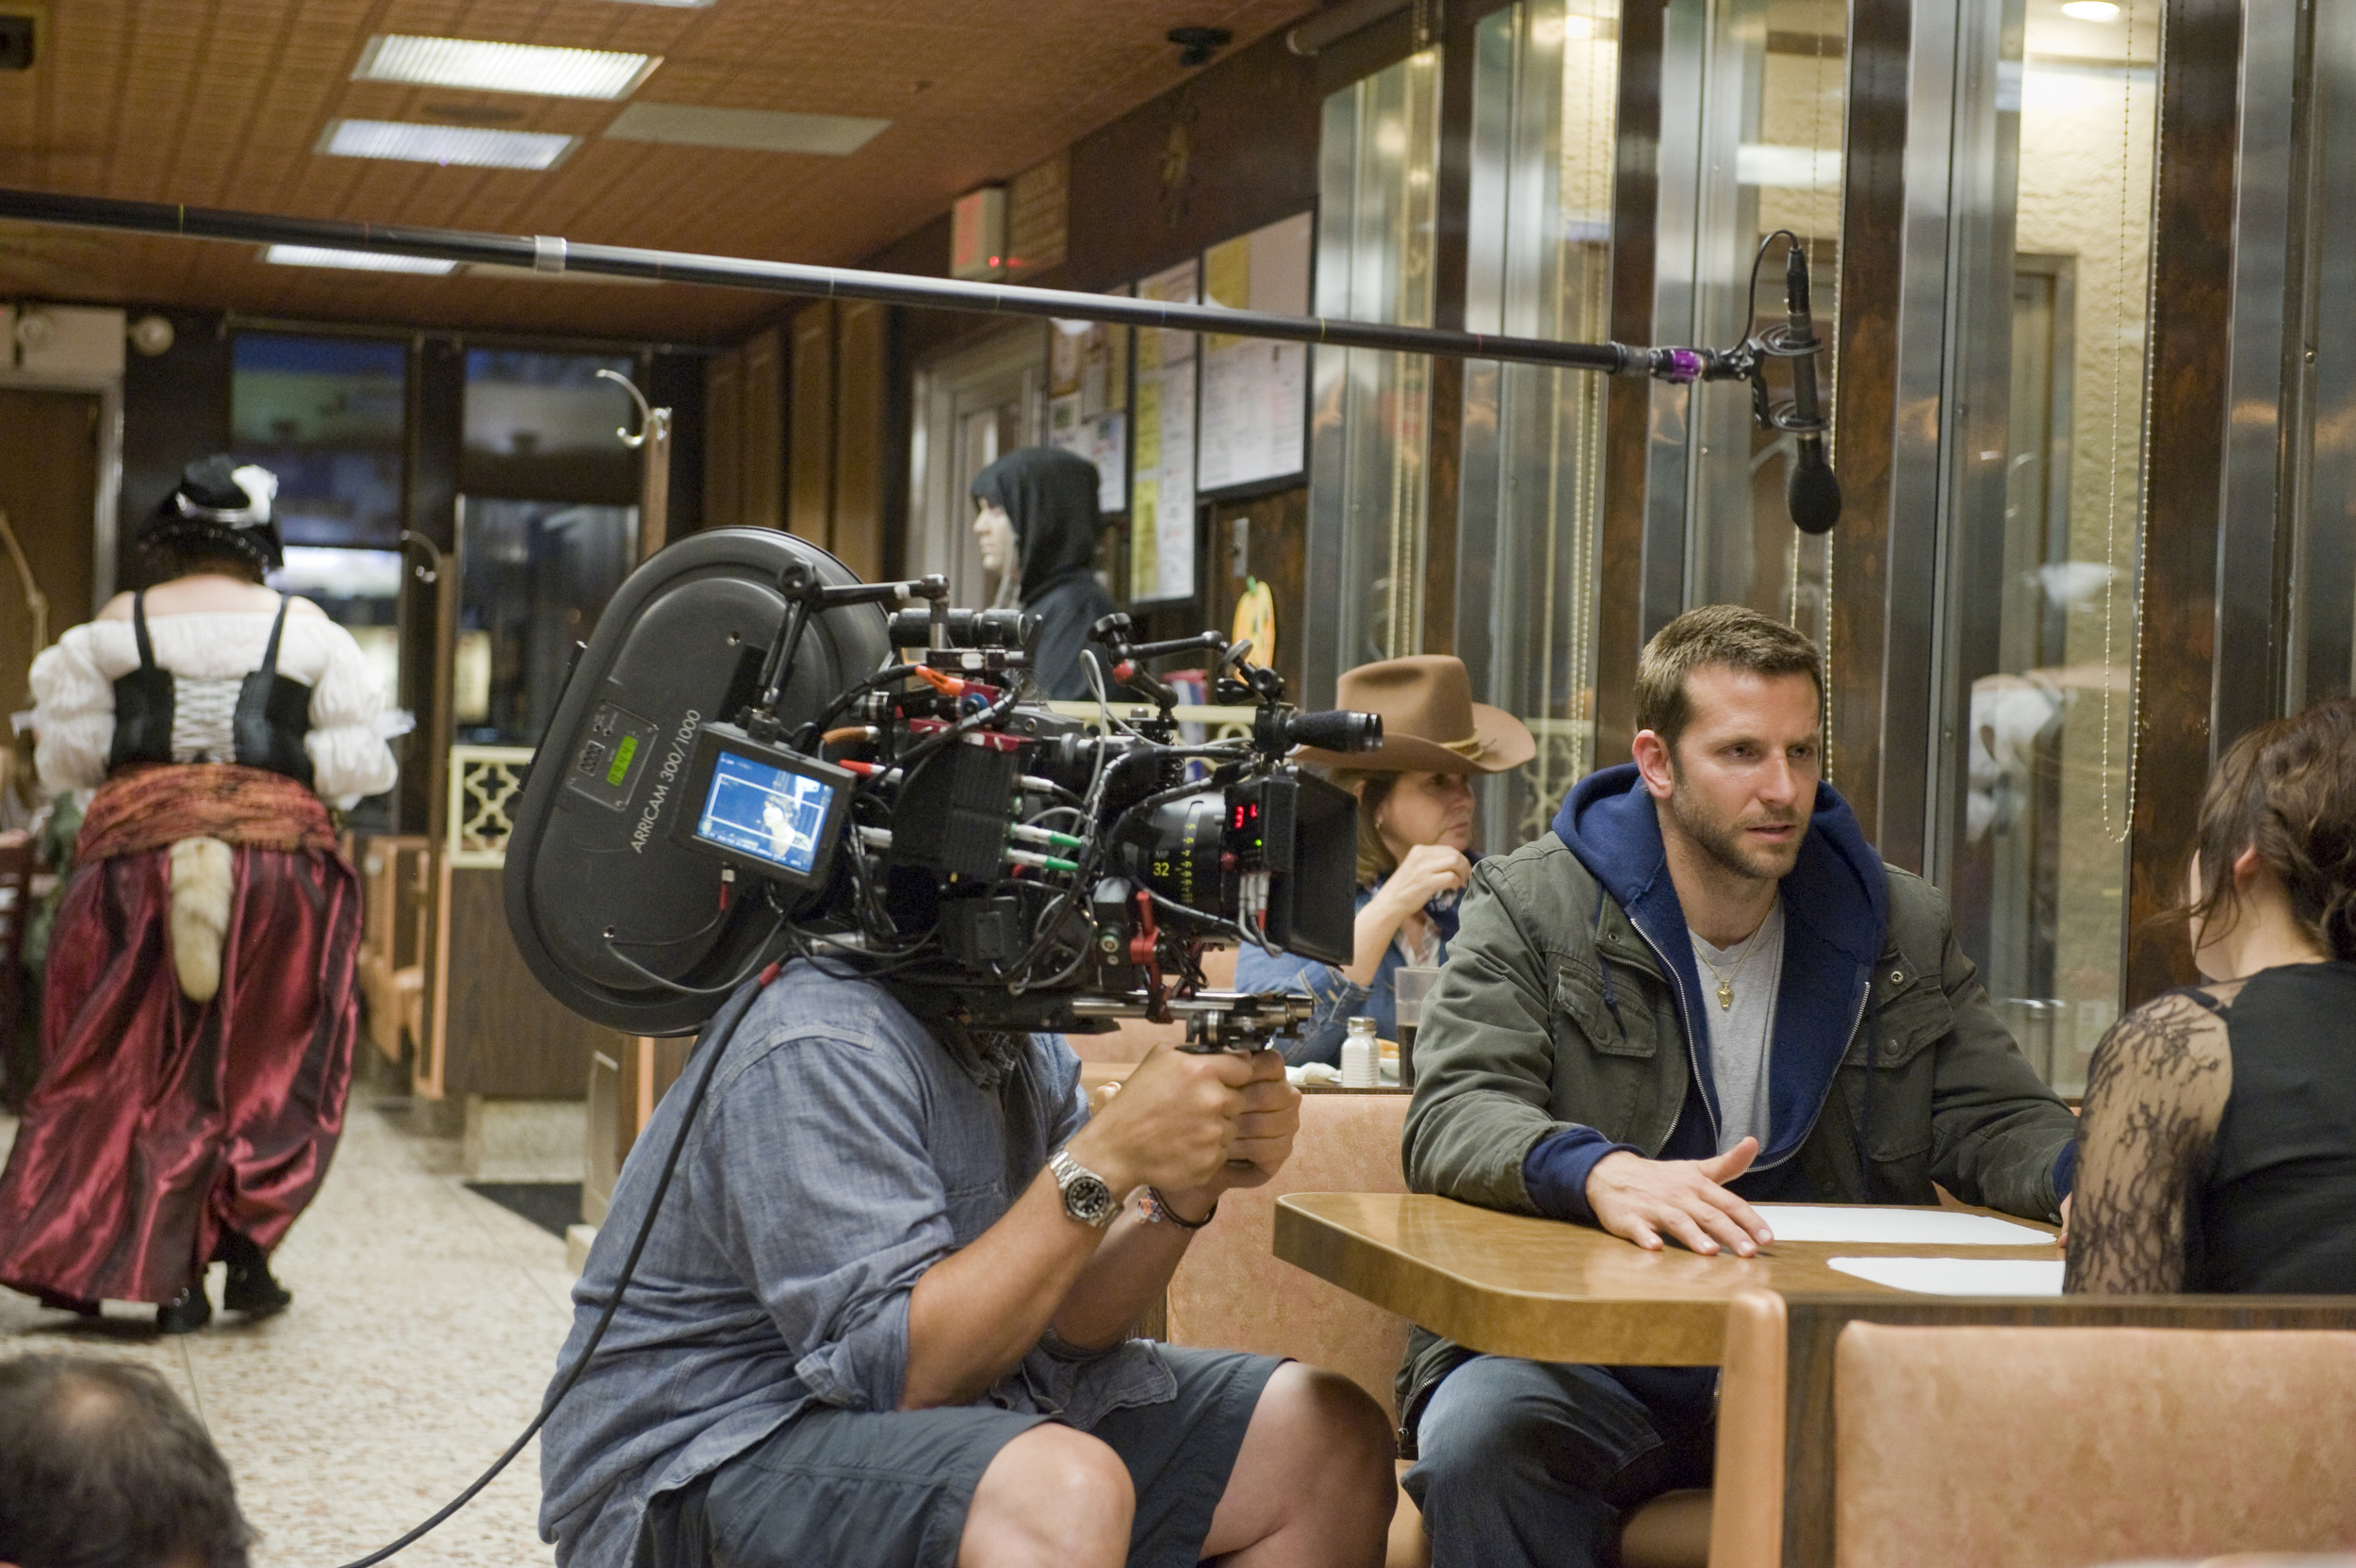 A behind-the-scene look on the set of  Silver Lining Playbook , also filmed in Philadelphia (at theLlanerch Diner in this scene), featuring Bradley Cooper and Jennifer Lawrence - image via  Google .